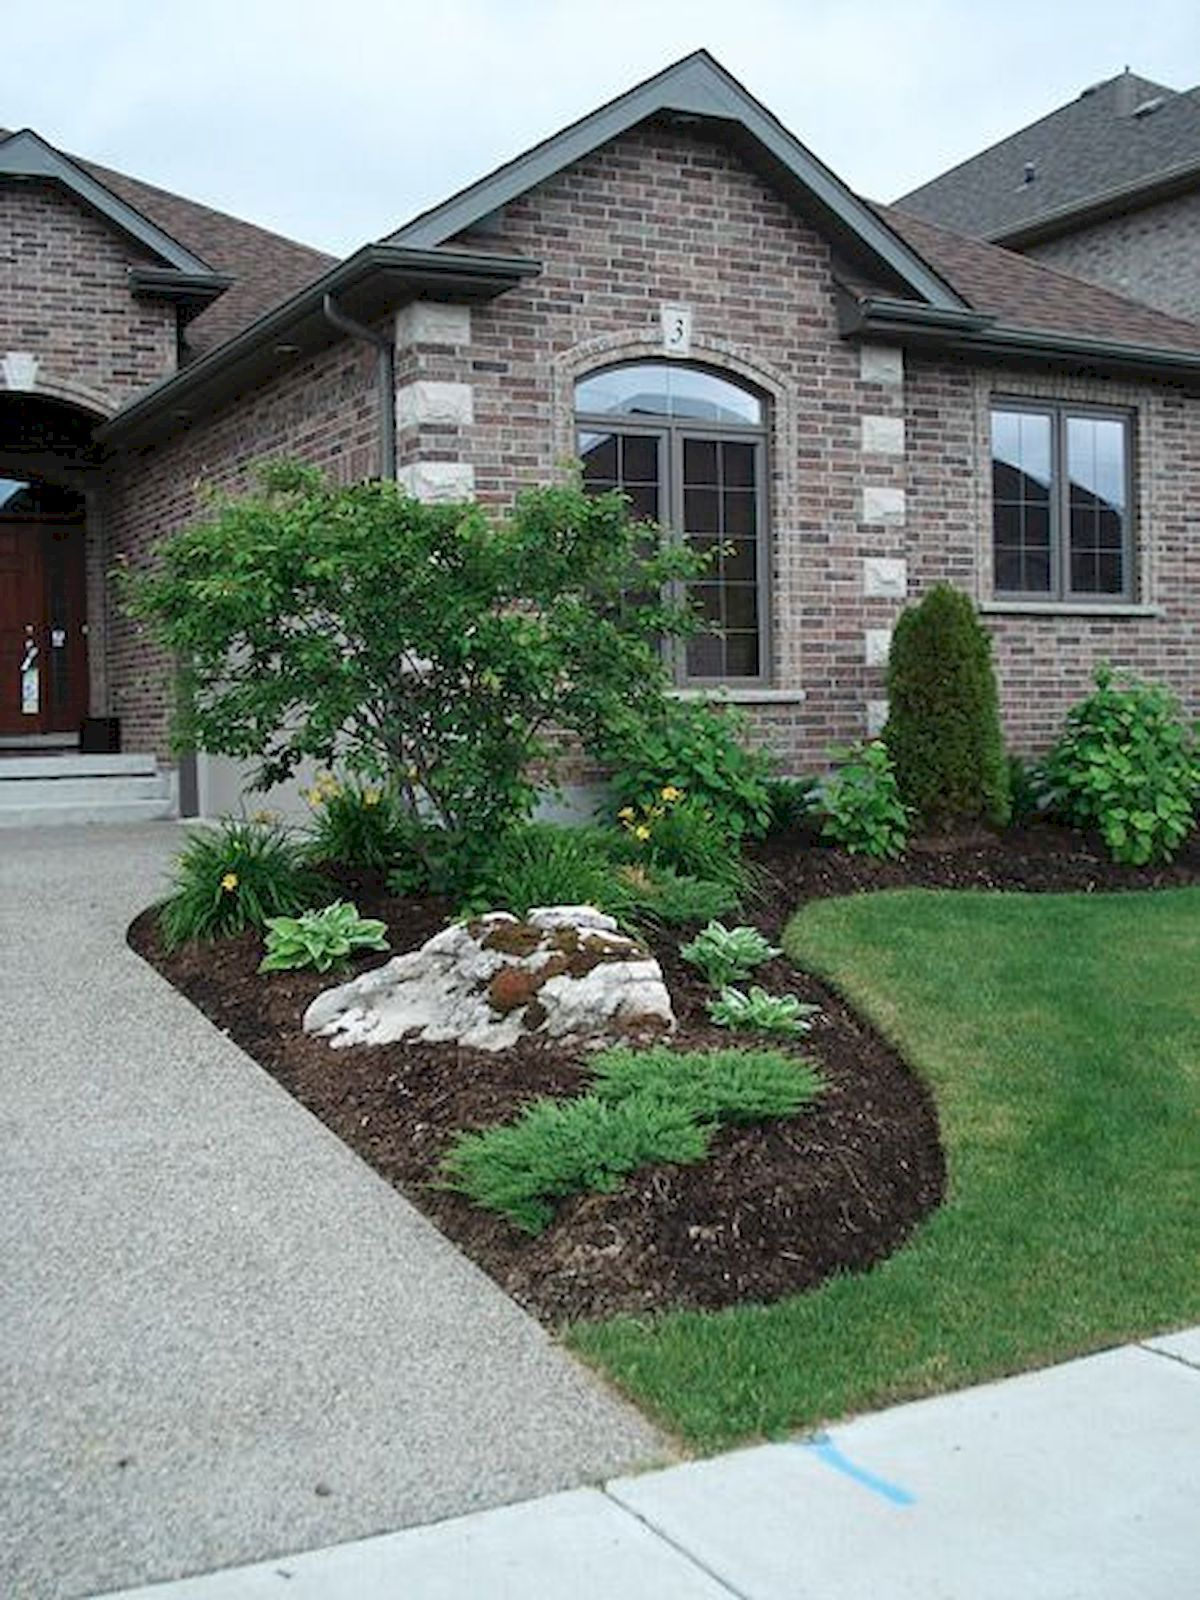 90 simple and beautiful front yard landscaping ideas on a budget  52